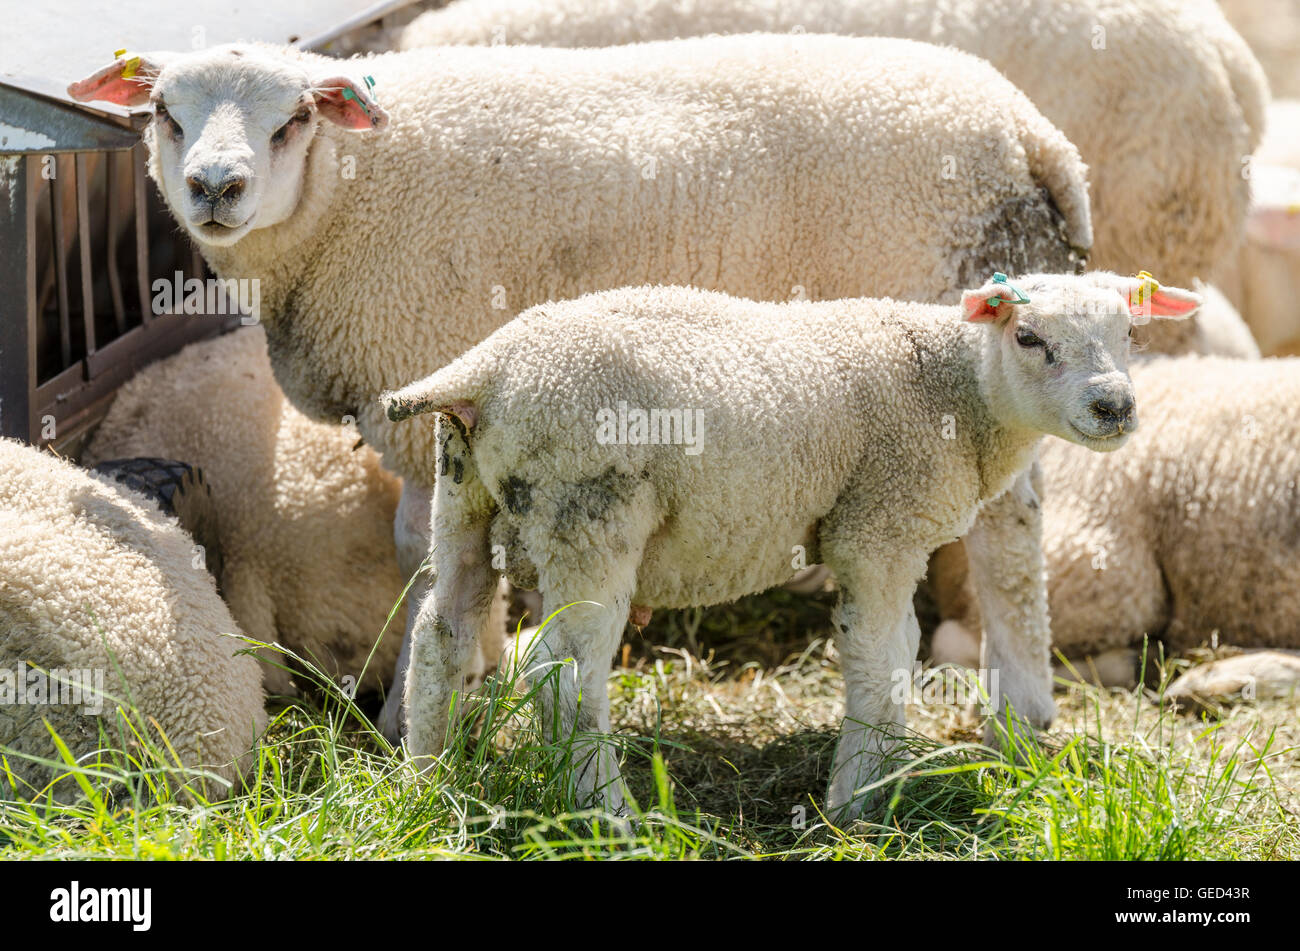 Sheep and lamb at feeding trough looking at camera - Stock Image